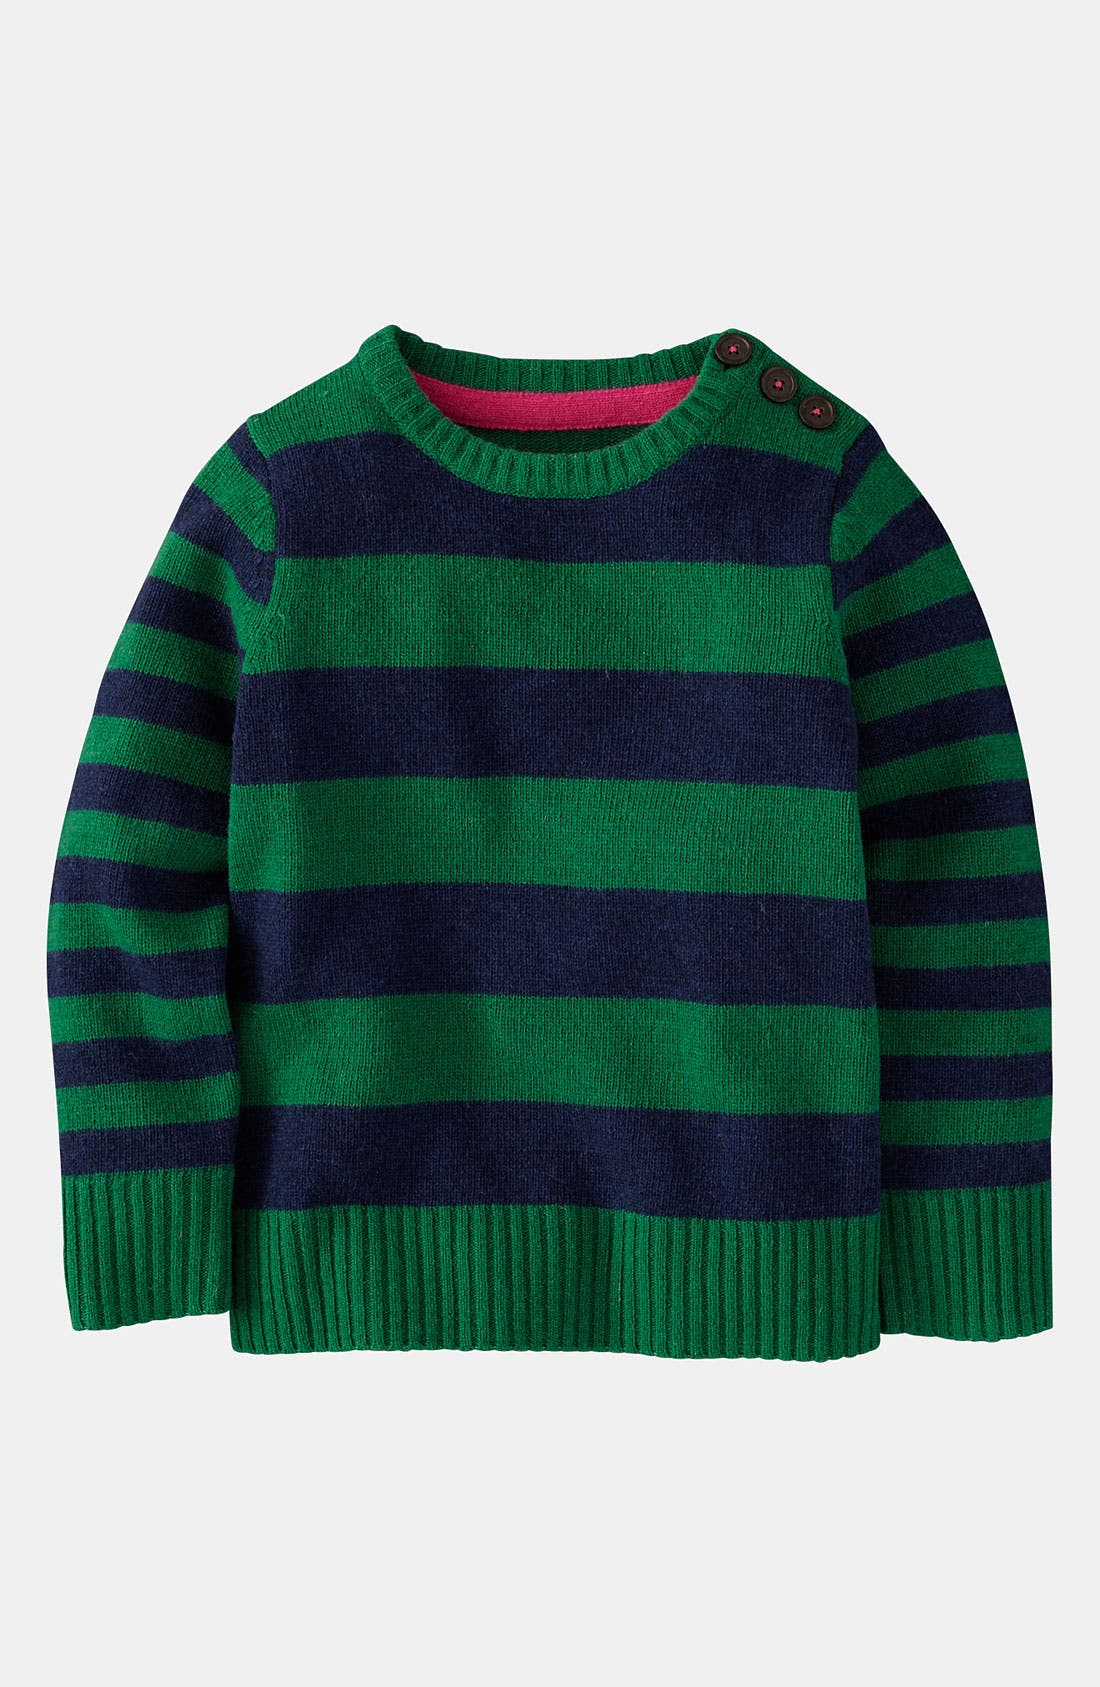 Main Image - Mini Boden Sweater (Little Boys & Big Boys)